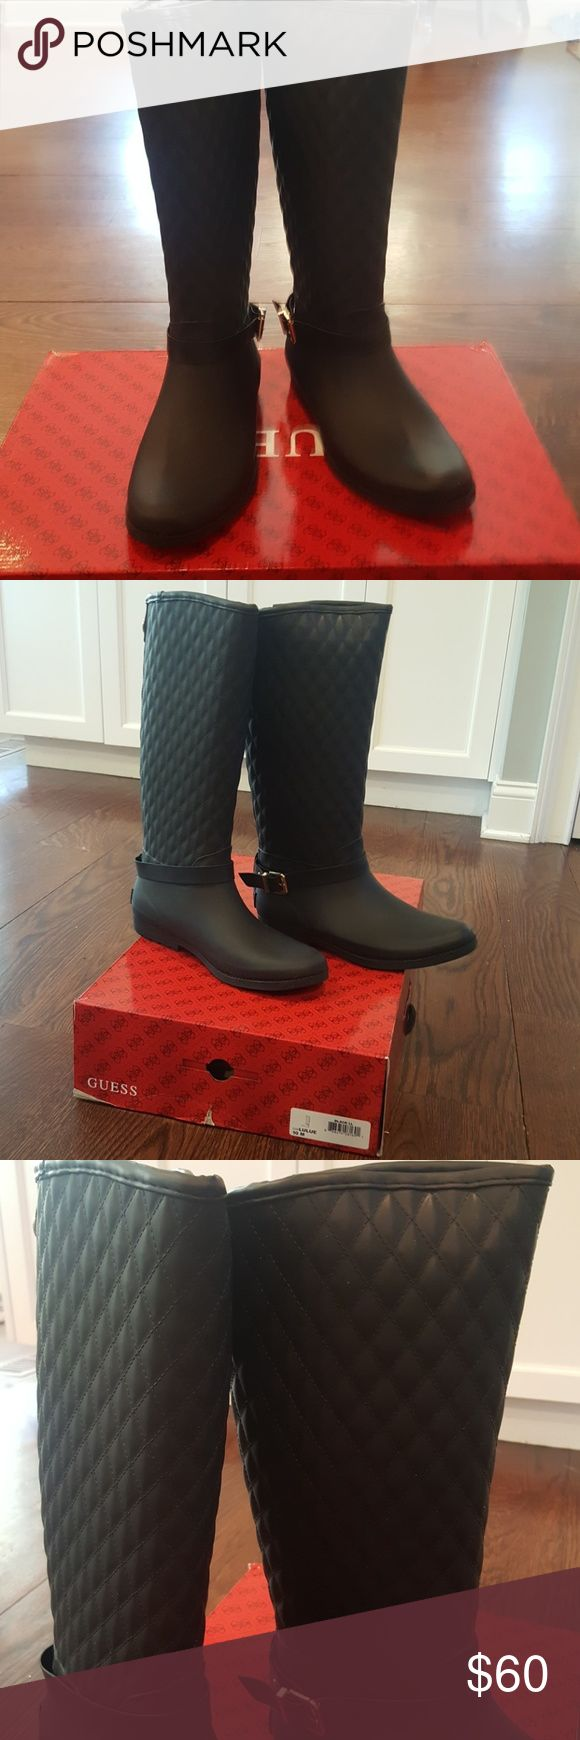 Guess Lulue Women's Rain Boots Warm women's rain boots.  Heavy duty rubber, fleece indide. Brand new, never worn. Guess Shoes Winter & Rain Boots